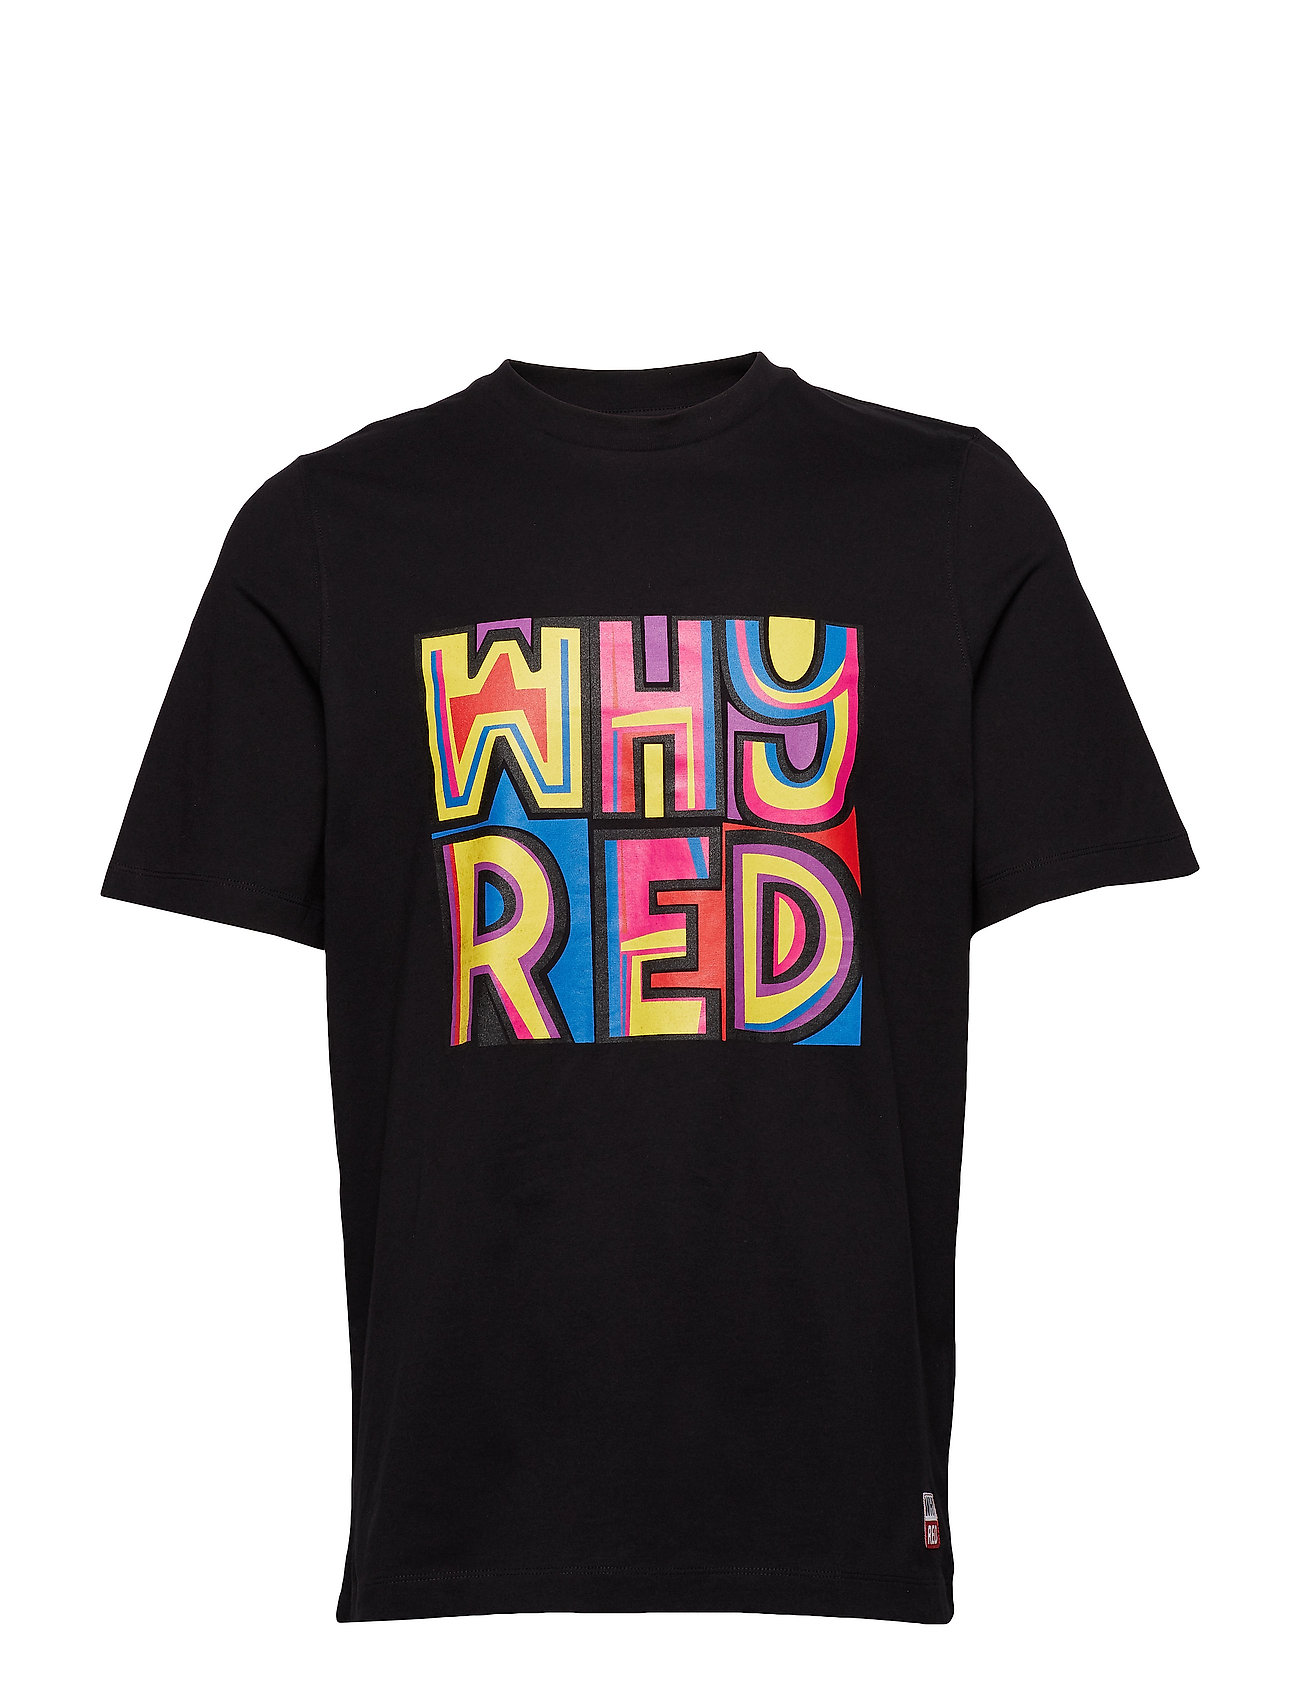 Whyred FOXTON COLOR PRINT - BLACK